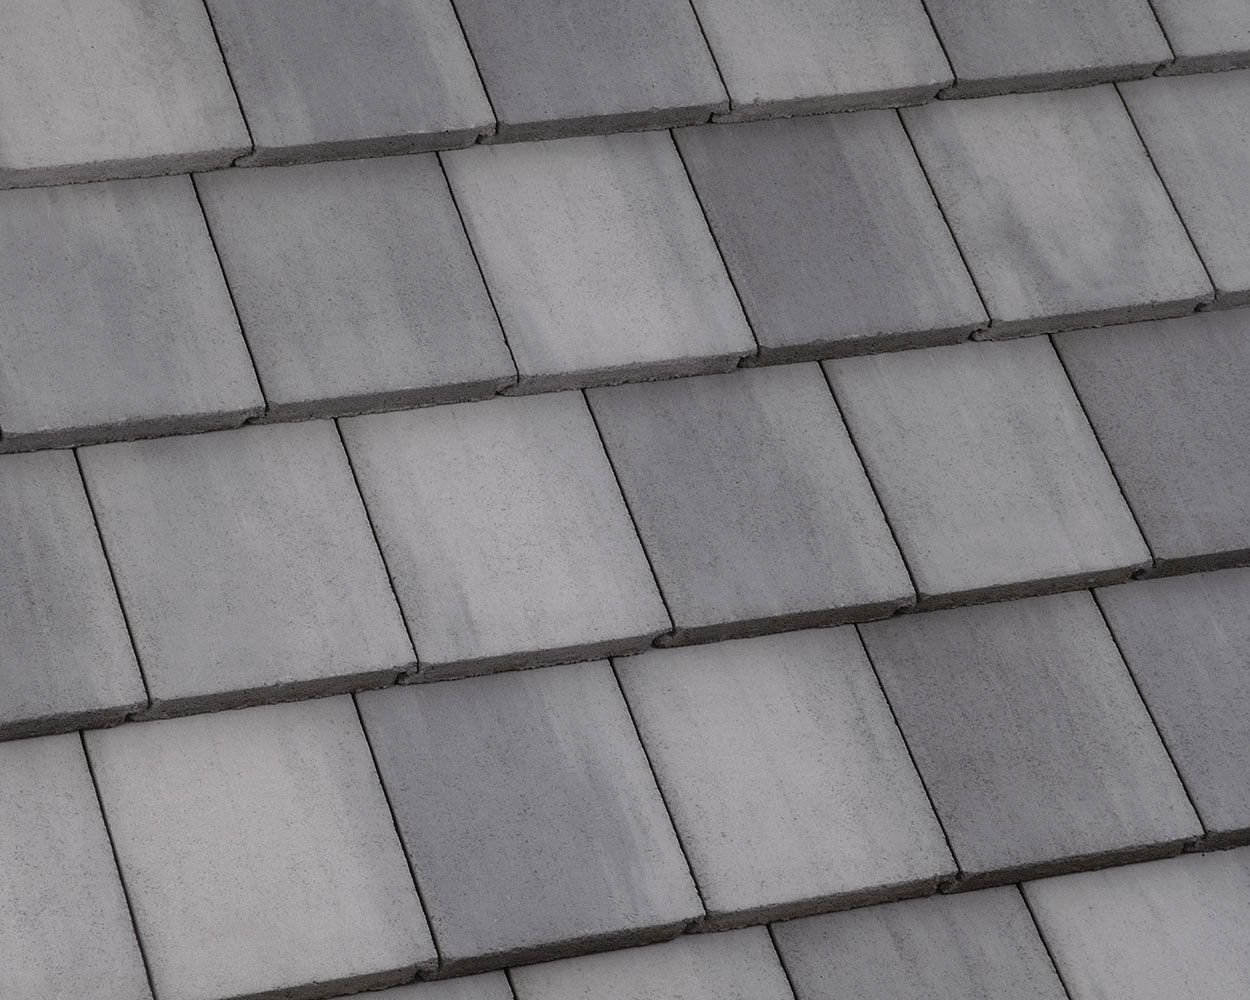 Pin By Agerena On Mistarz Residence In 2020 Roof Tiles Light Grey Concrete Roof Tiles